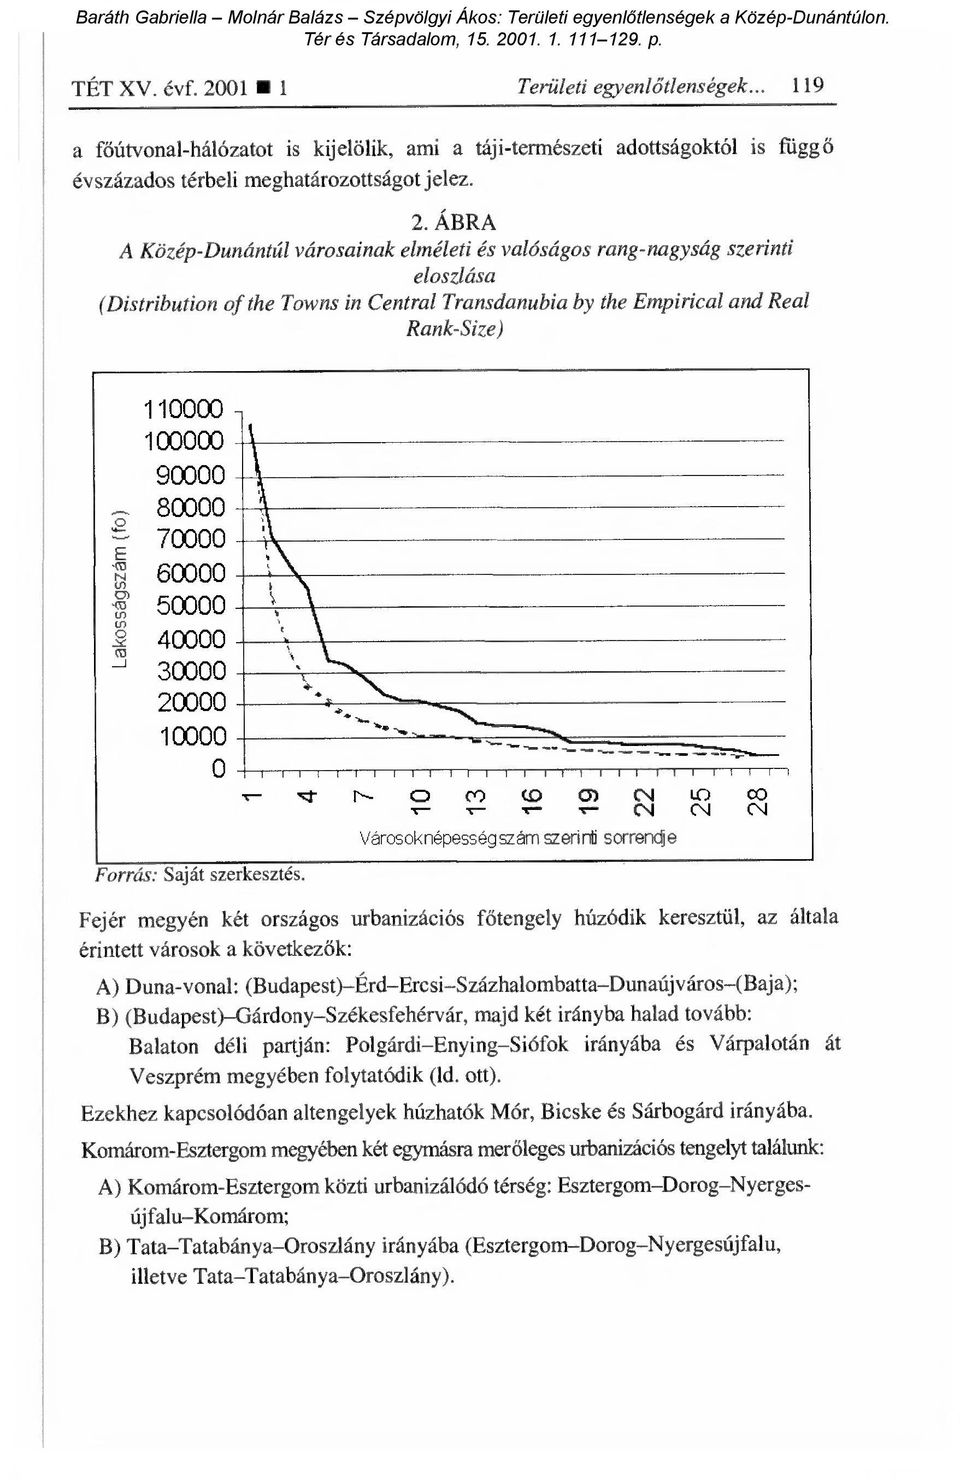 ÁBRA A Közép-Dunántúl városainak elméleti és valóságos rang-nagyság szerinti eloszlása (Distribution of the Towns in Central Transdanubia by the Empirical and Real Rank-Size) Lakosság sz ám ( fo)